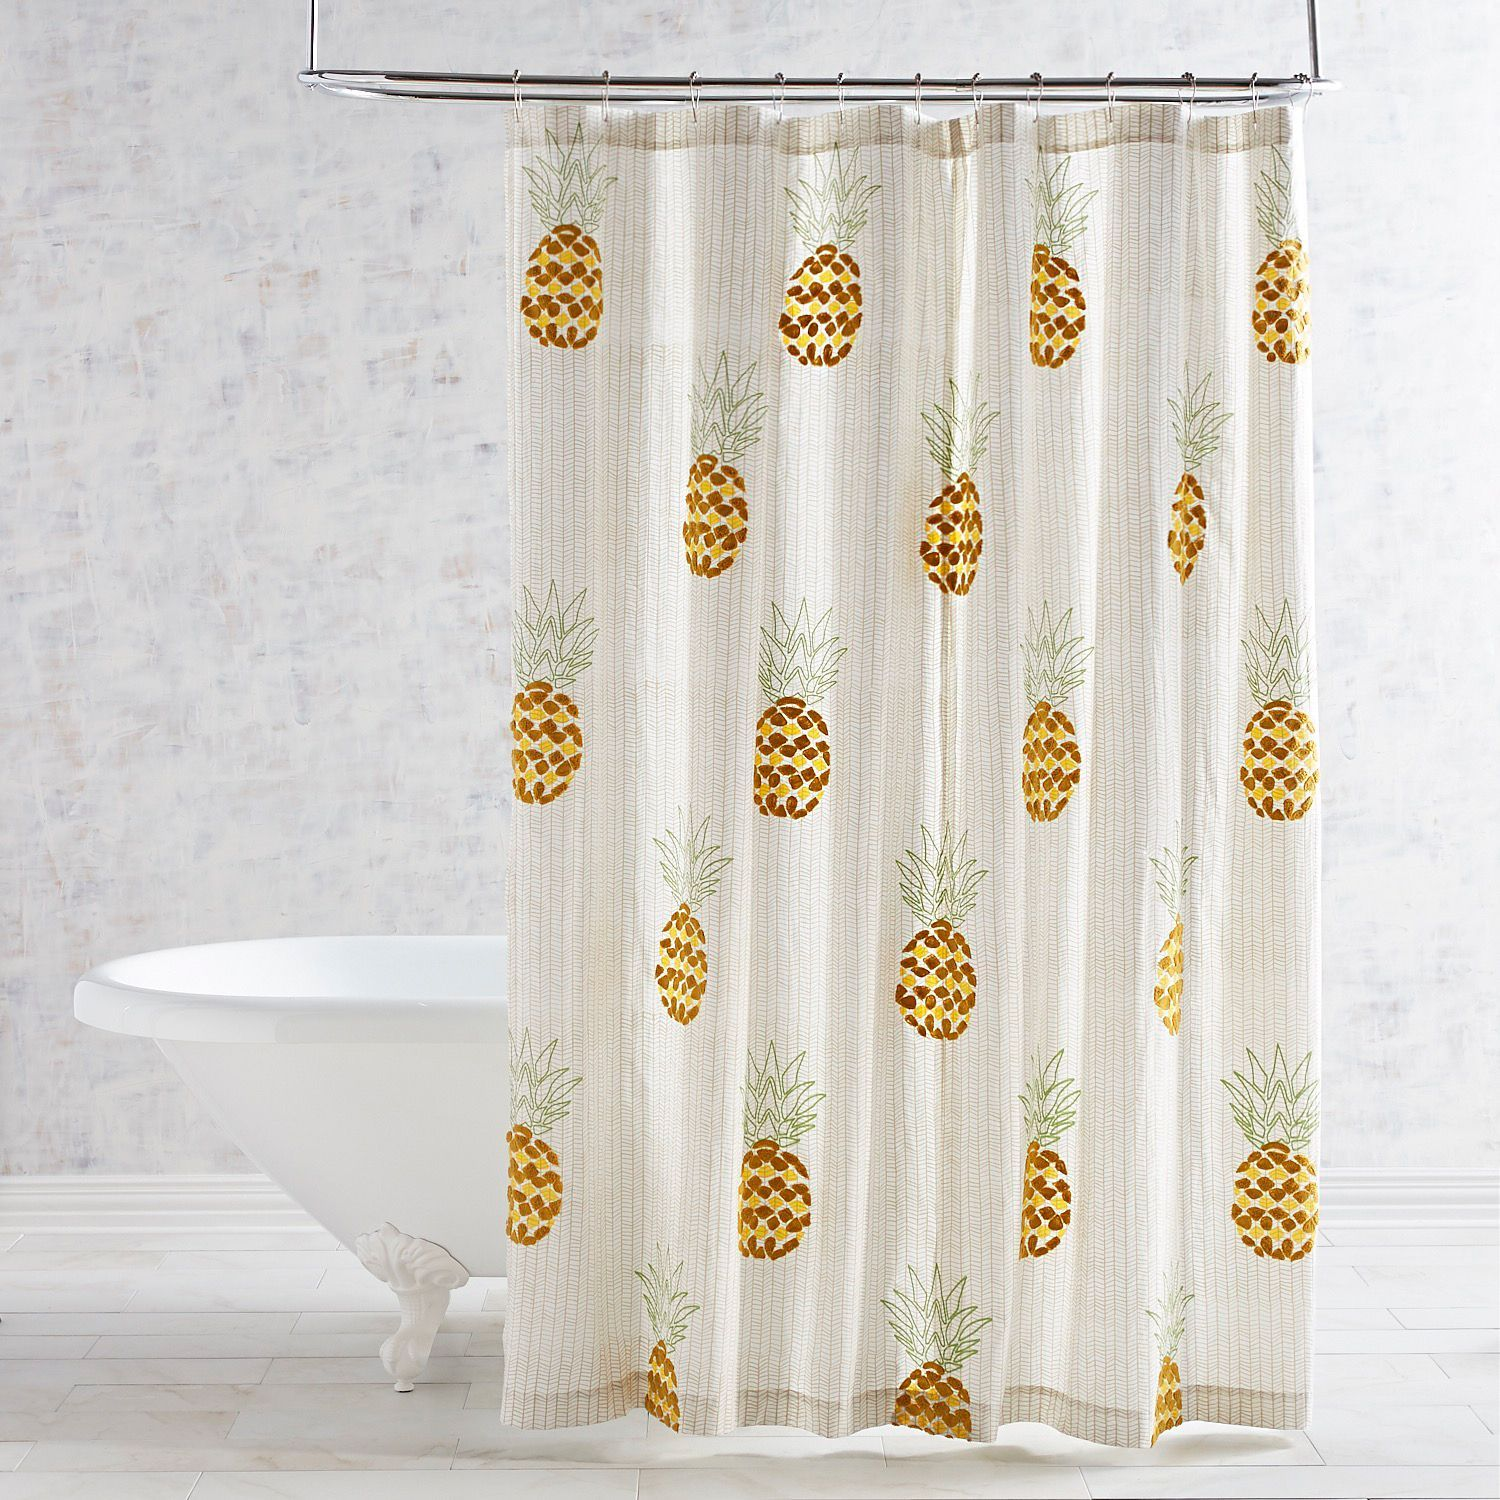 Embroidered Pineapple Shower Curtain Pineapple Shower Curtain